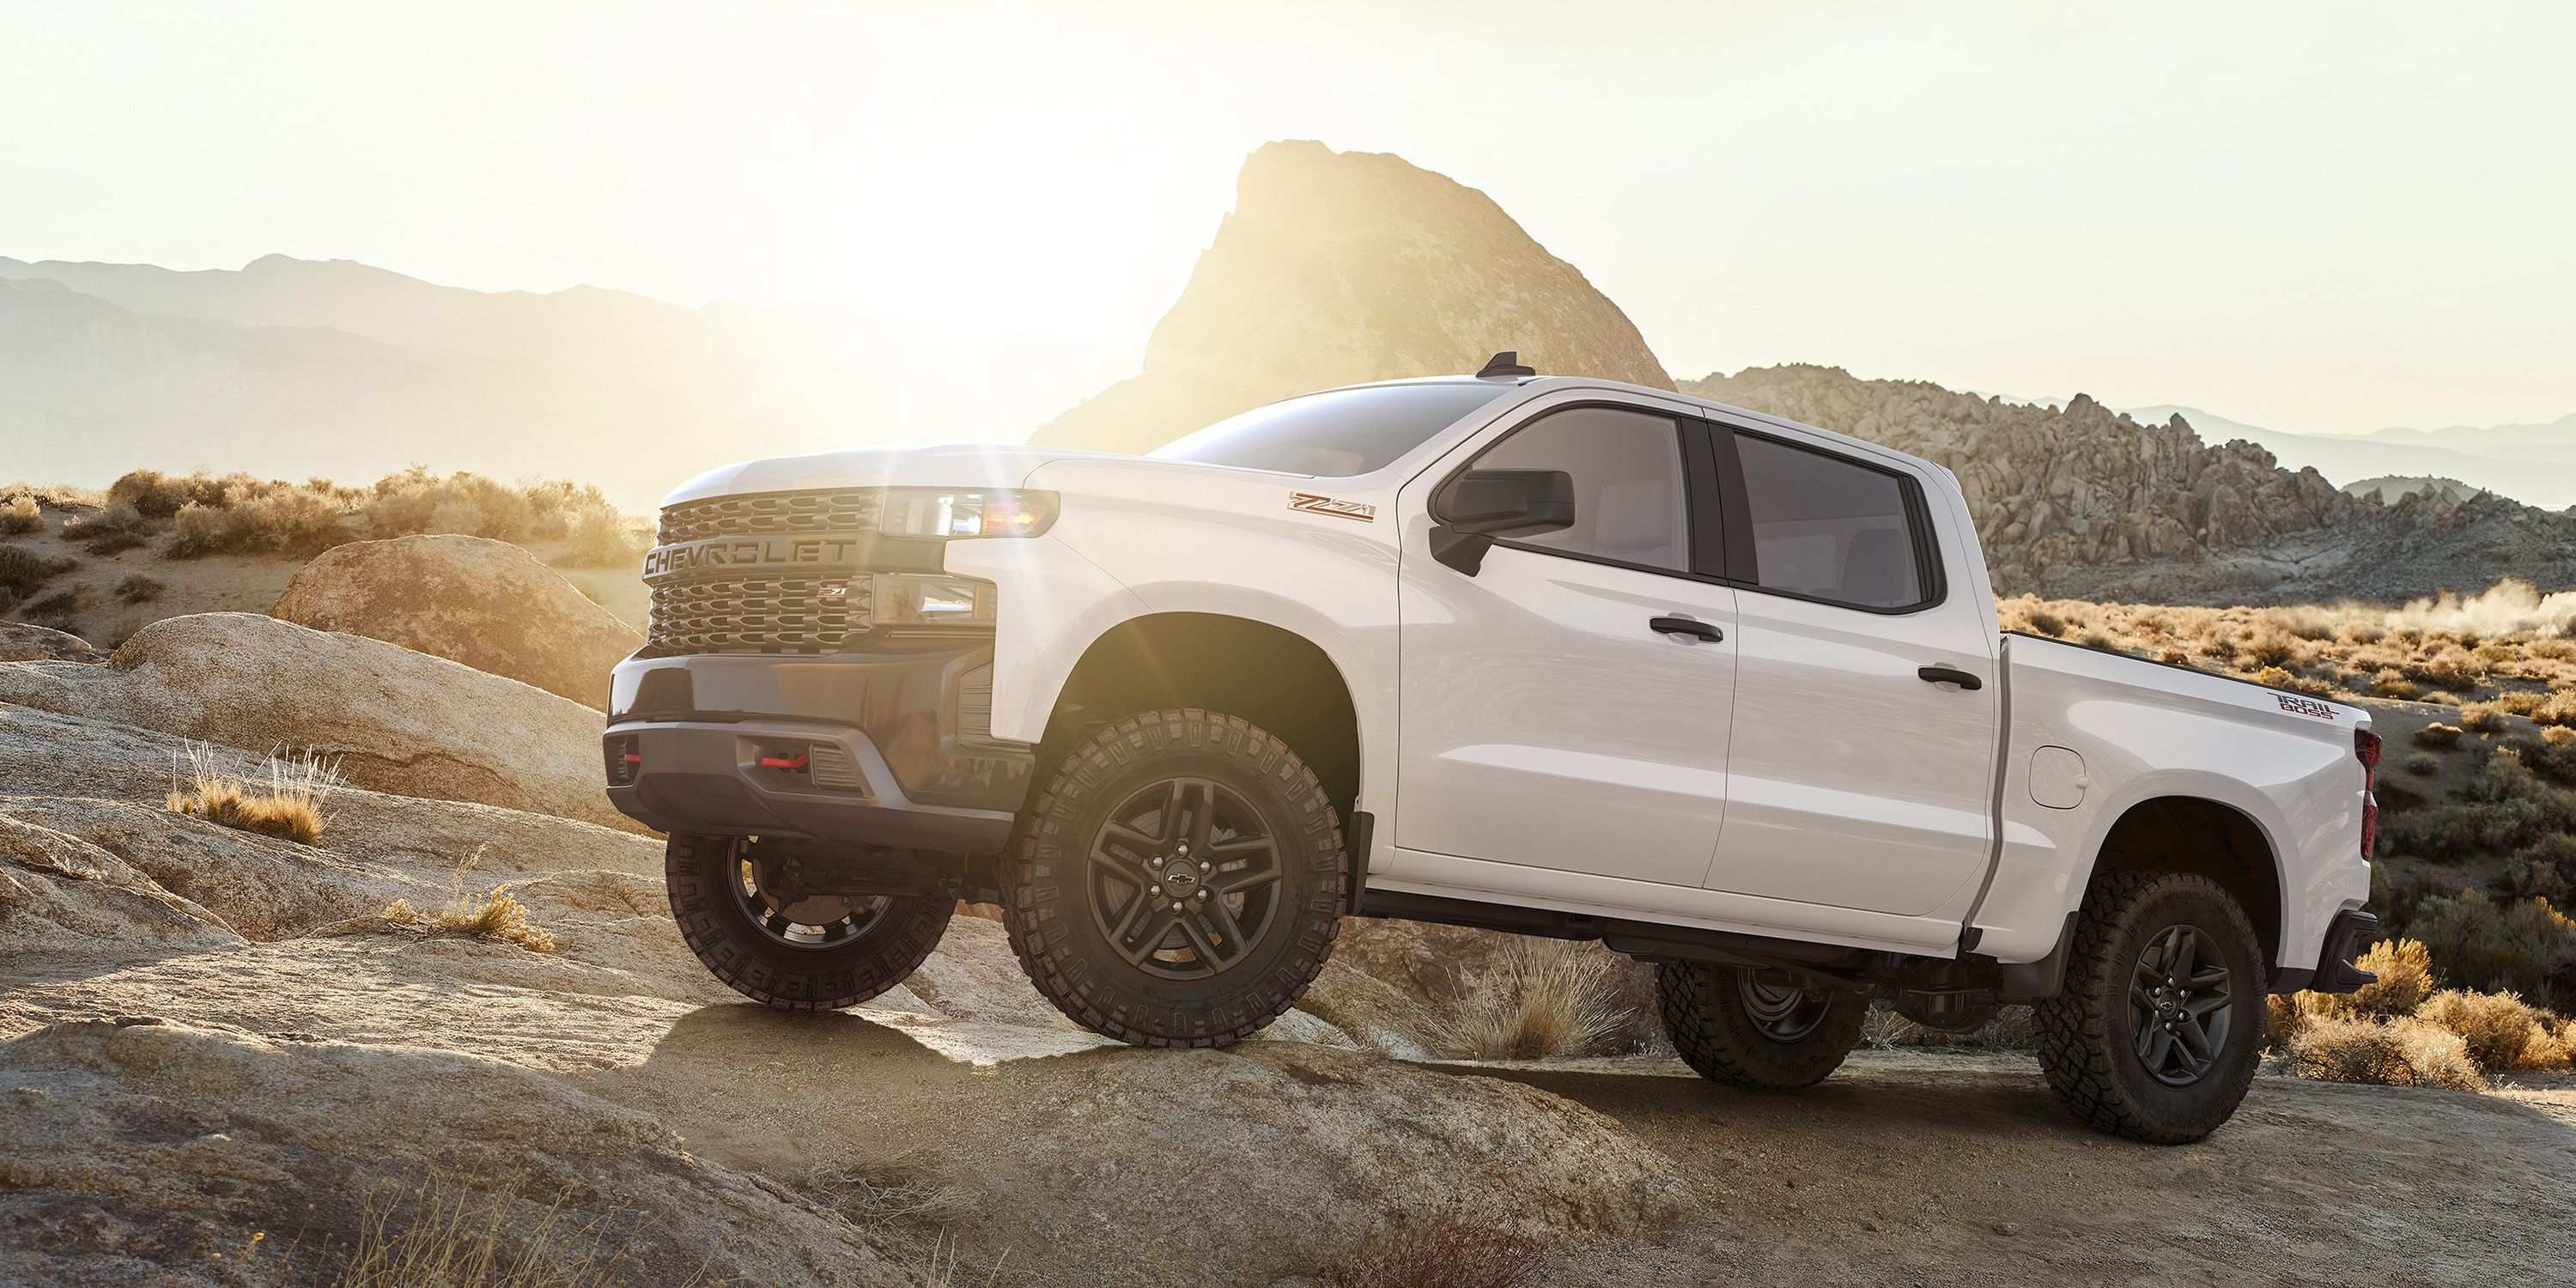 14 Concept of 2019 Chevrolet Silverado Diesel Price with 2019 Chevrolet Silverado Diesel